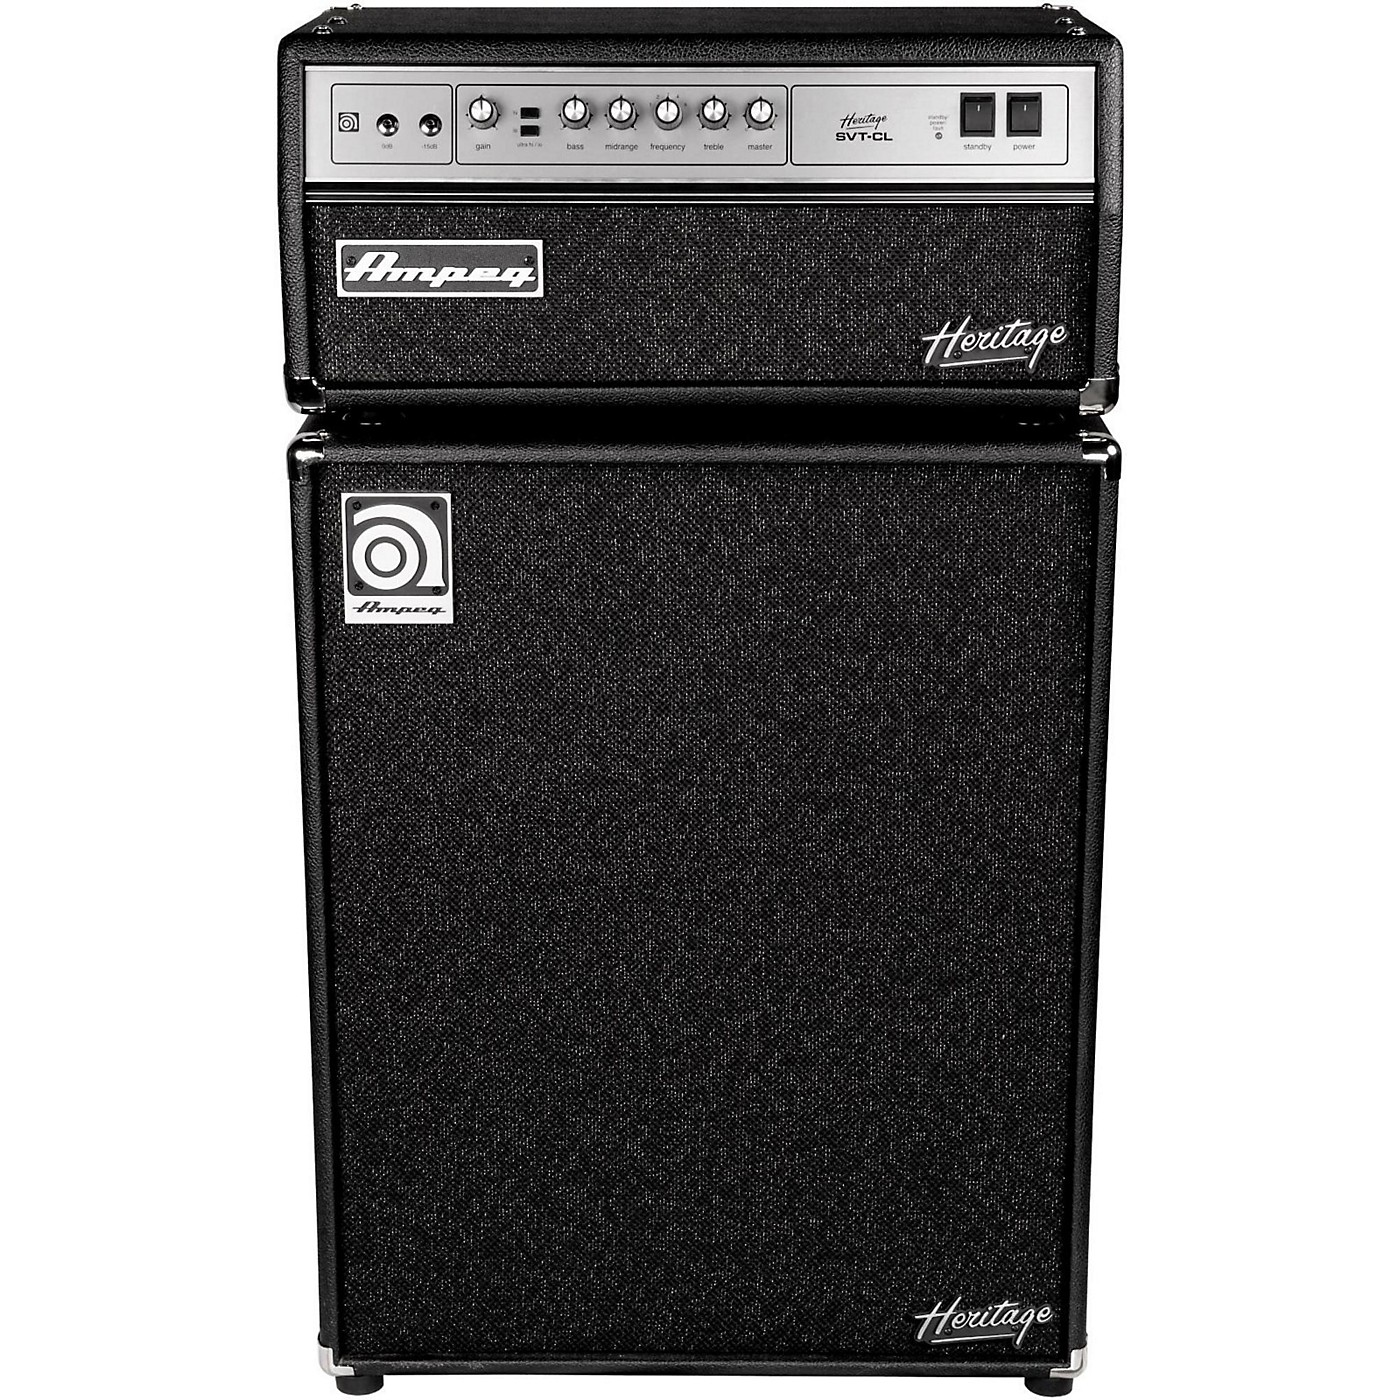 Ampeg Heritage SVT-CL 300W Tube Bass Amp Head with 4x10 500W Bass Speaker Cab thumbnail